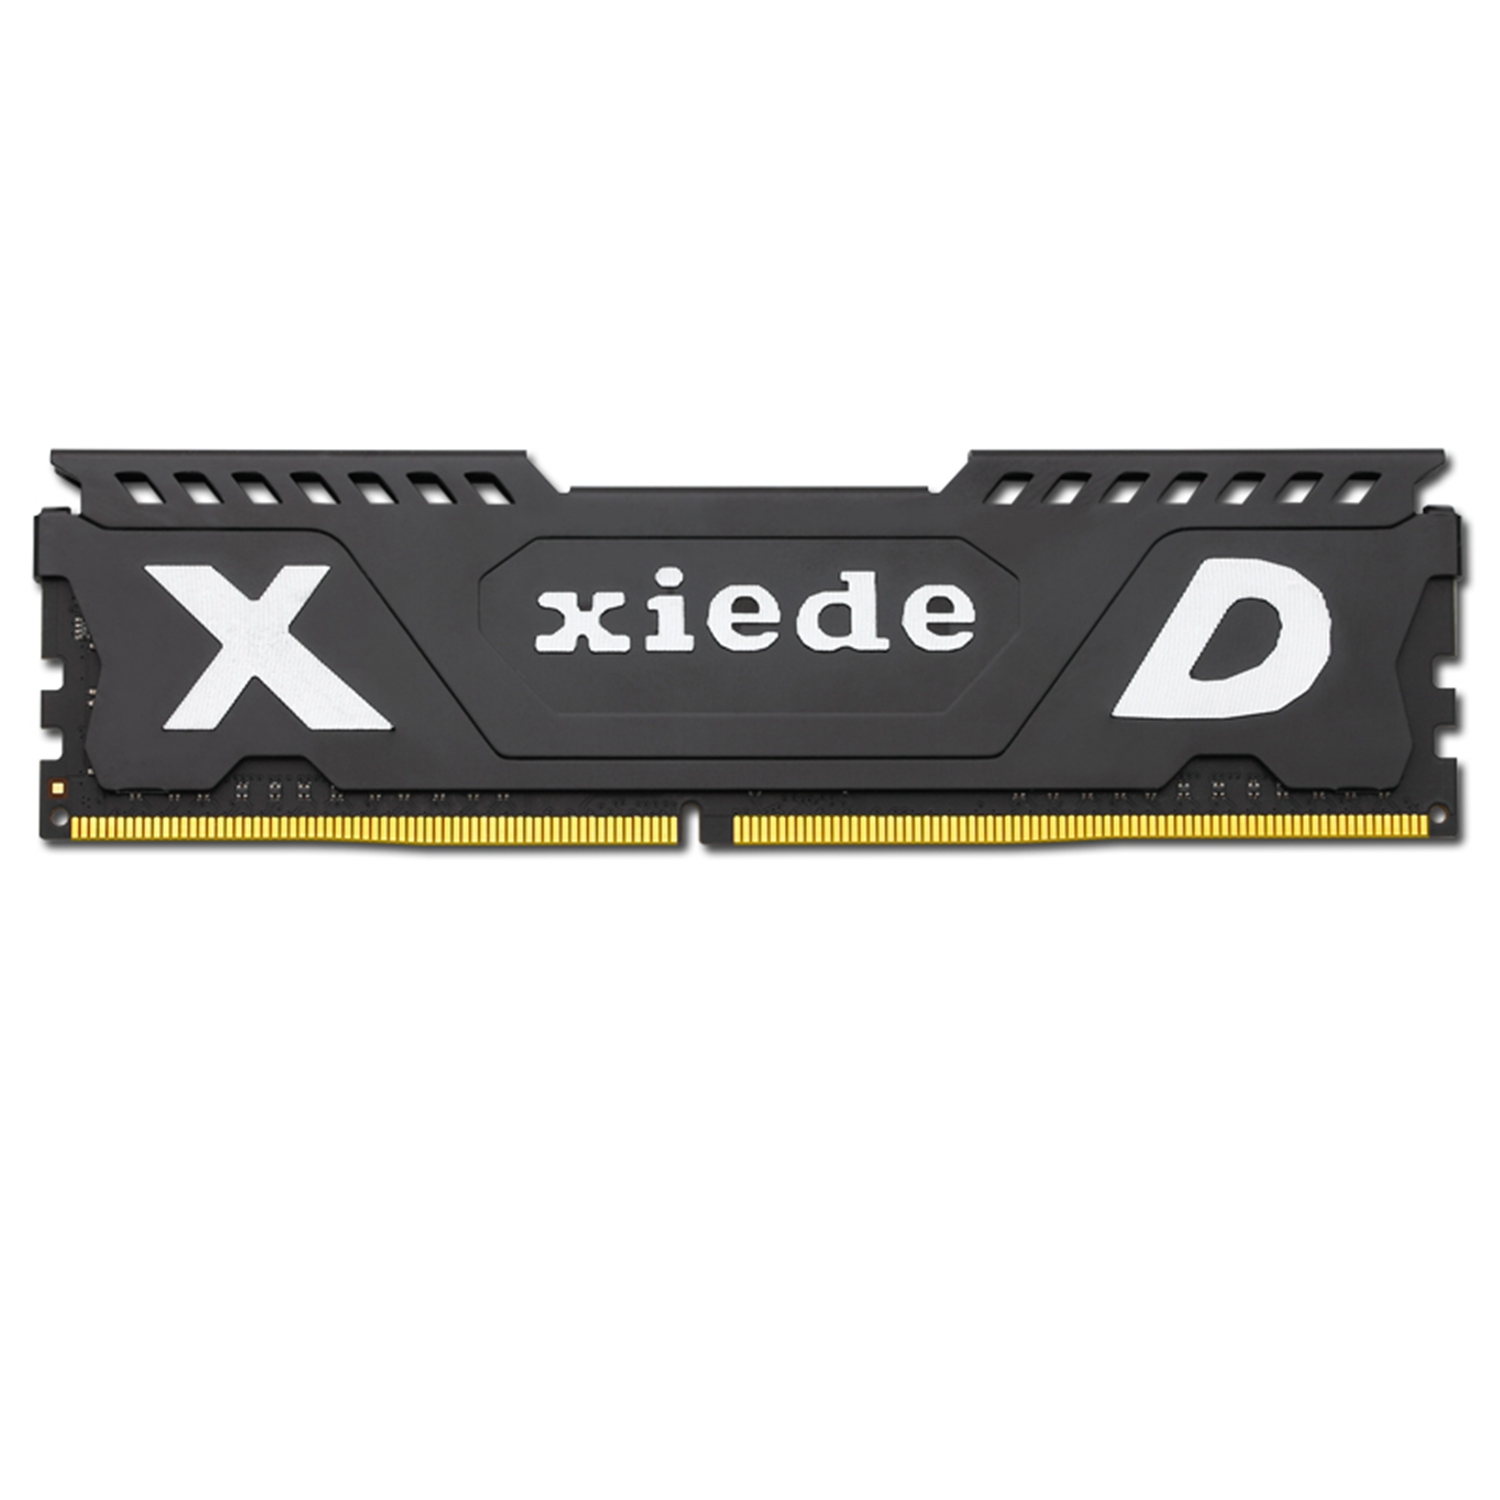 Xiede Desktop Computer Memory RAM Module <font><b>Ddr3</b></font> <font><b>1600</b></font> <font><b>8GB</b></font> PC3-12800 240Pin <font><b>DIMM</b></font> 1600mhz With Heat Sink For AMD/Inter image